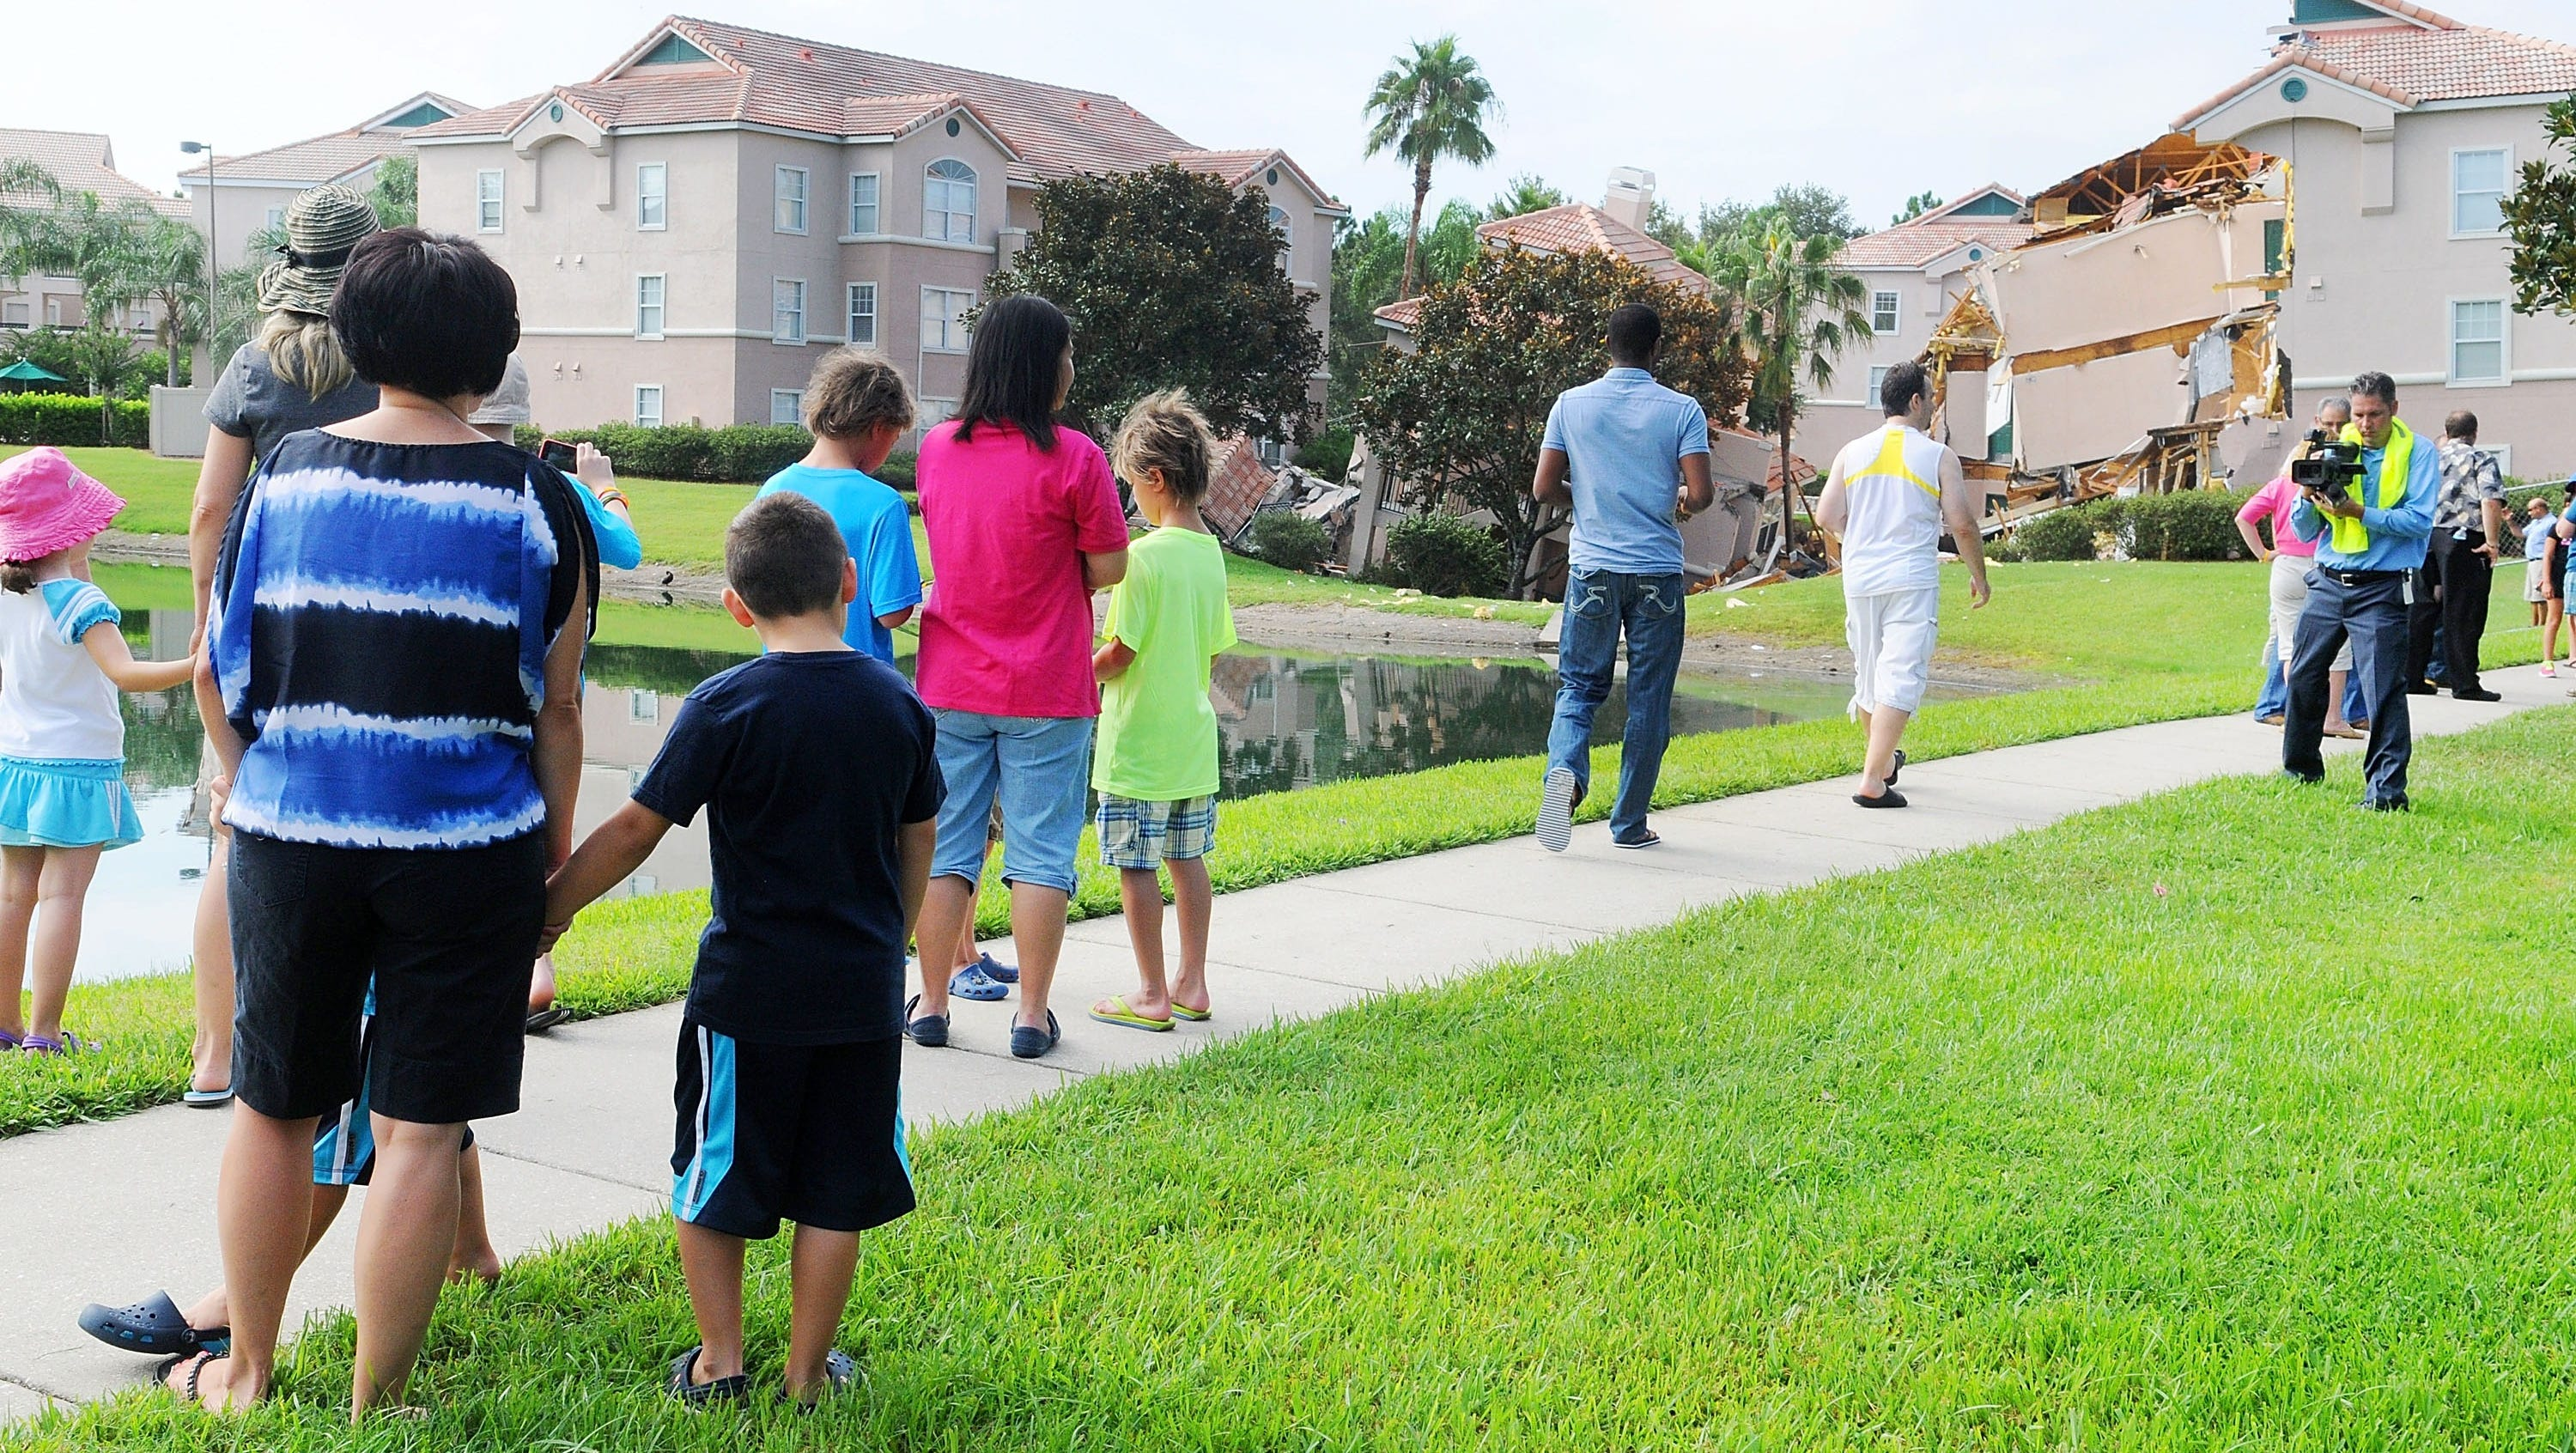 People stand near a partially collapsed building at Summer Bay Resort in Clermont, Fla. Engineers on Aug. 12 were trying to determine the extent of the damage  after luxury resort condominiums crumbled into a massive sinkhole.